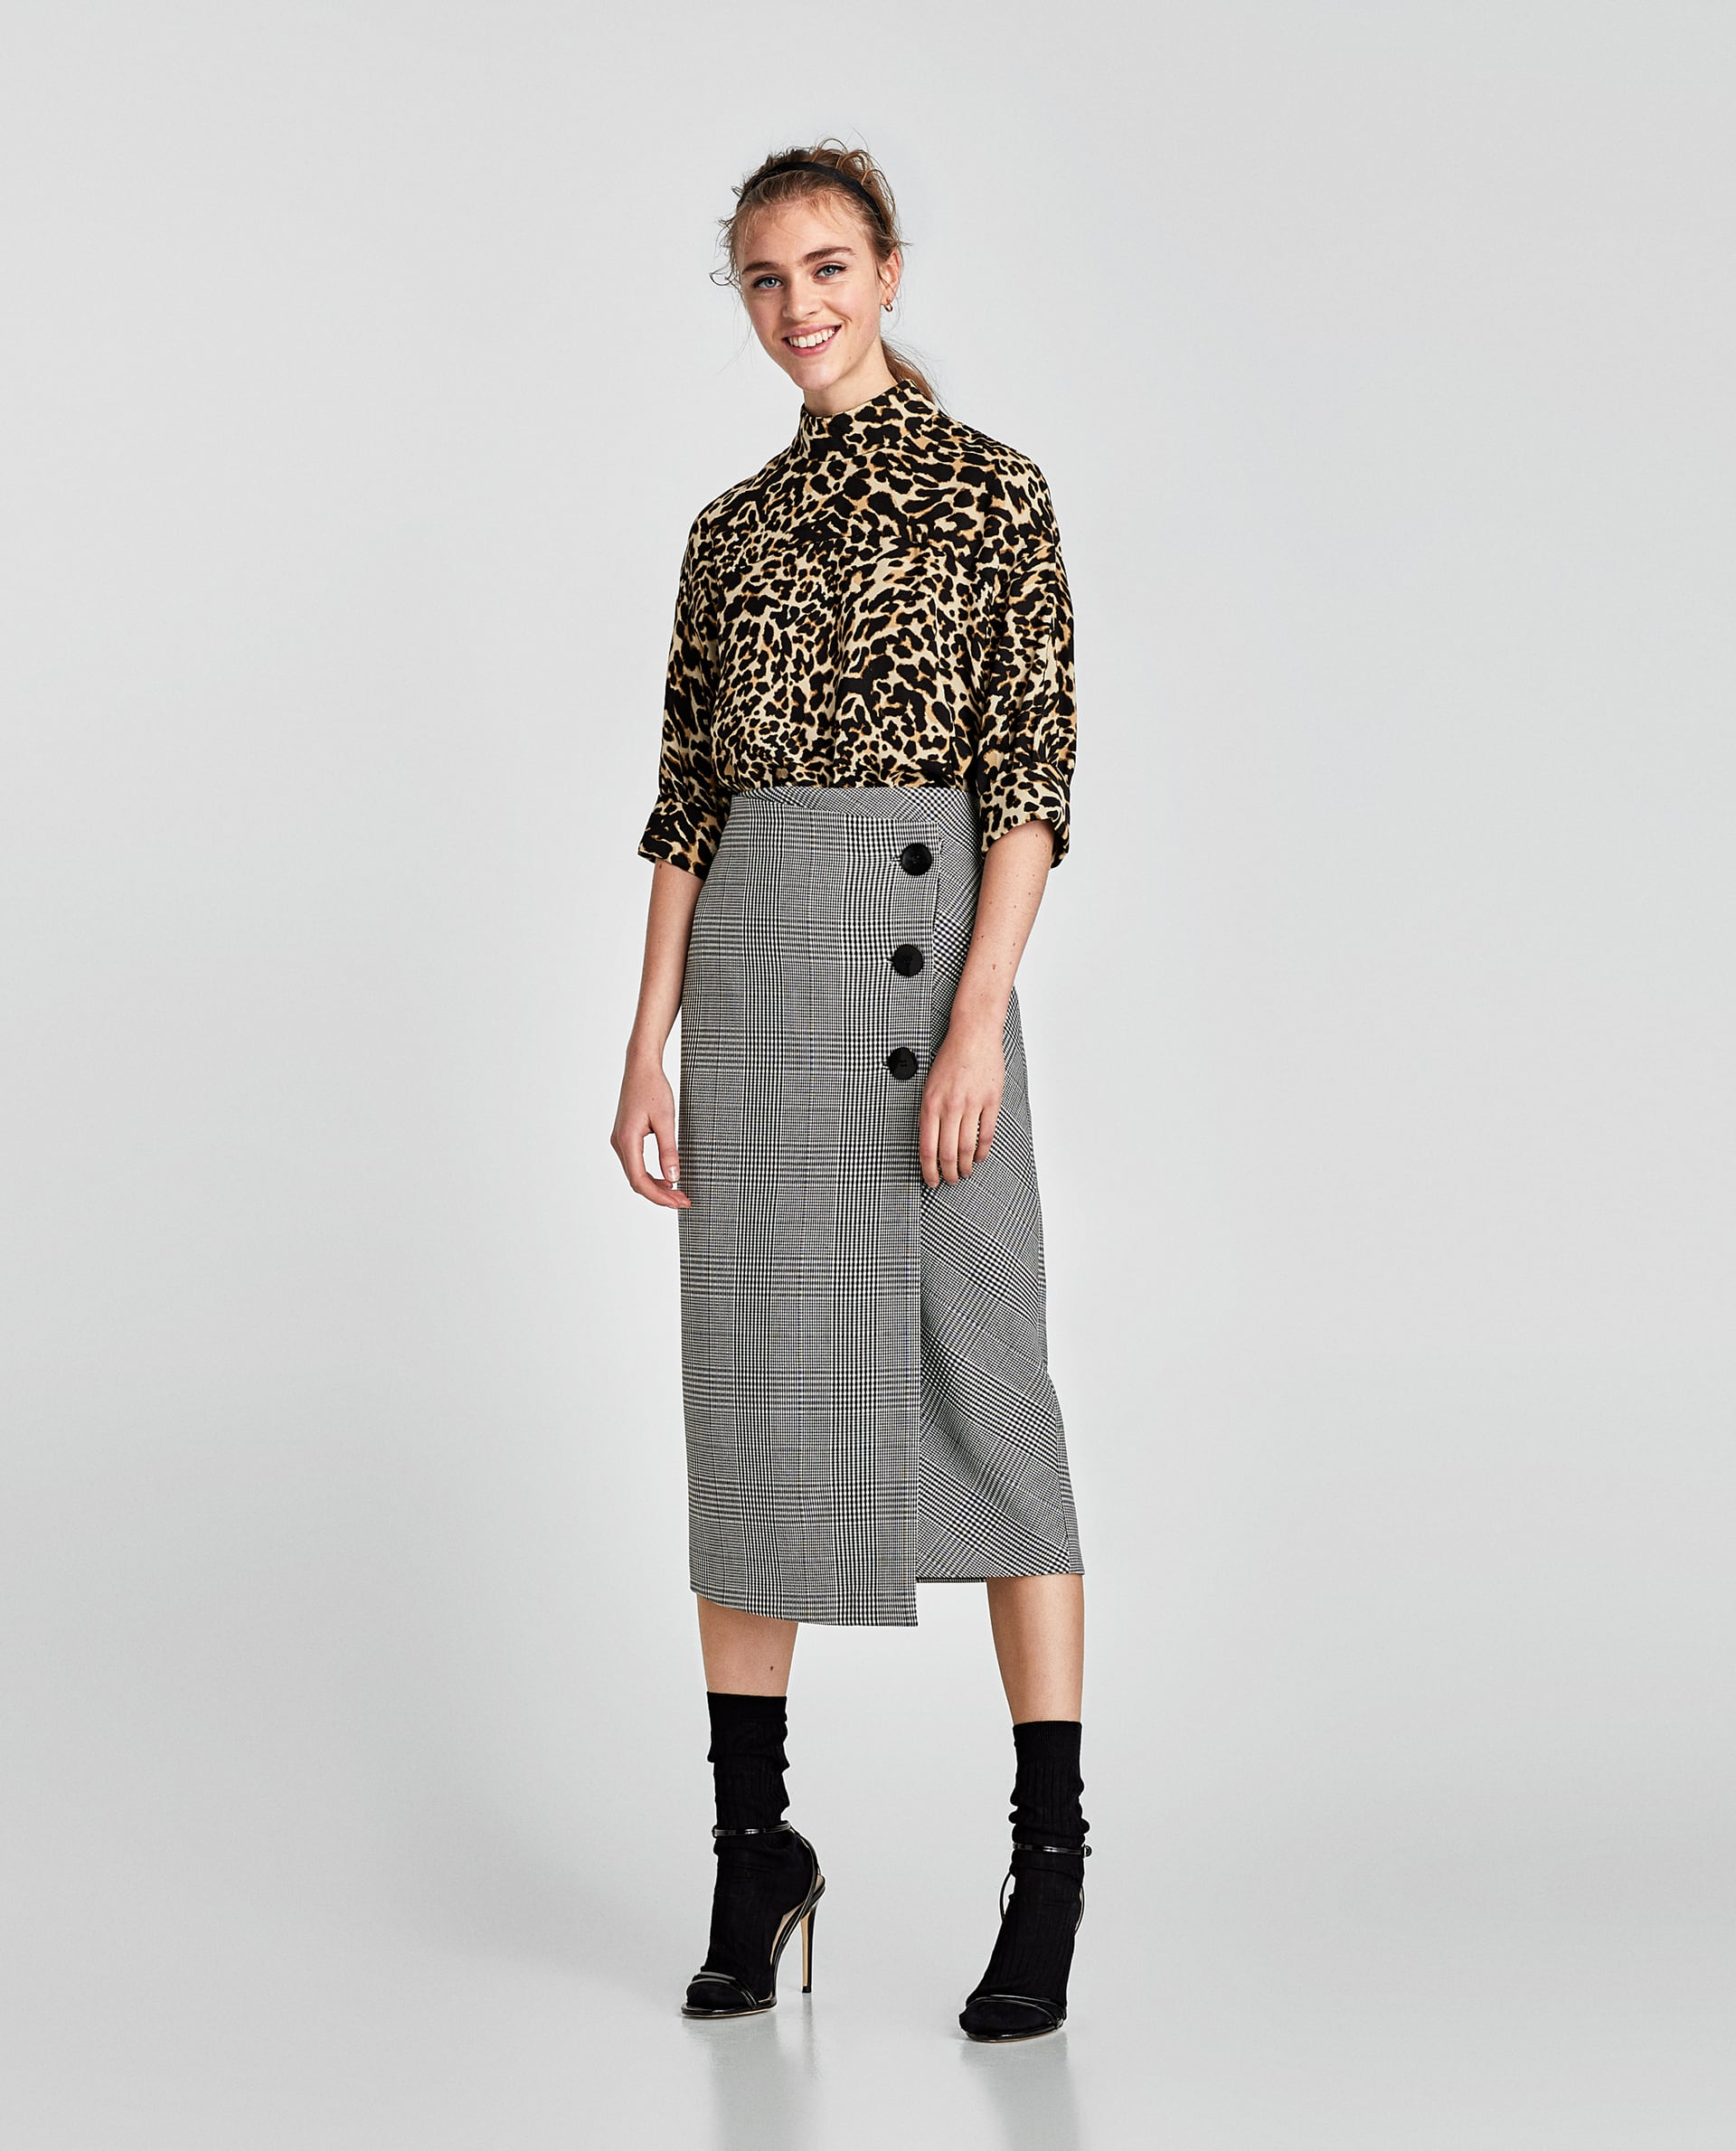 76a5682eead7 Leopard Print Tops One of the easiest statement pieces that can be worn for  dressy occasions. Make sure to tone down the outfit down with subtle  coloured ...